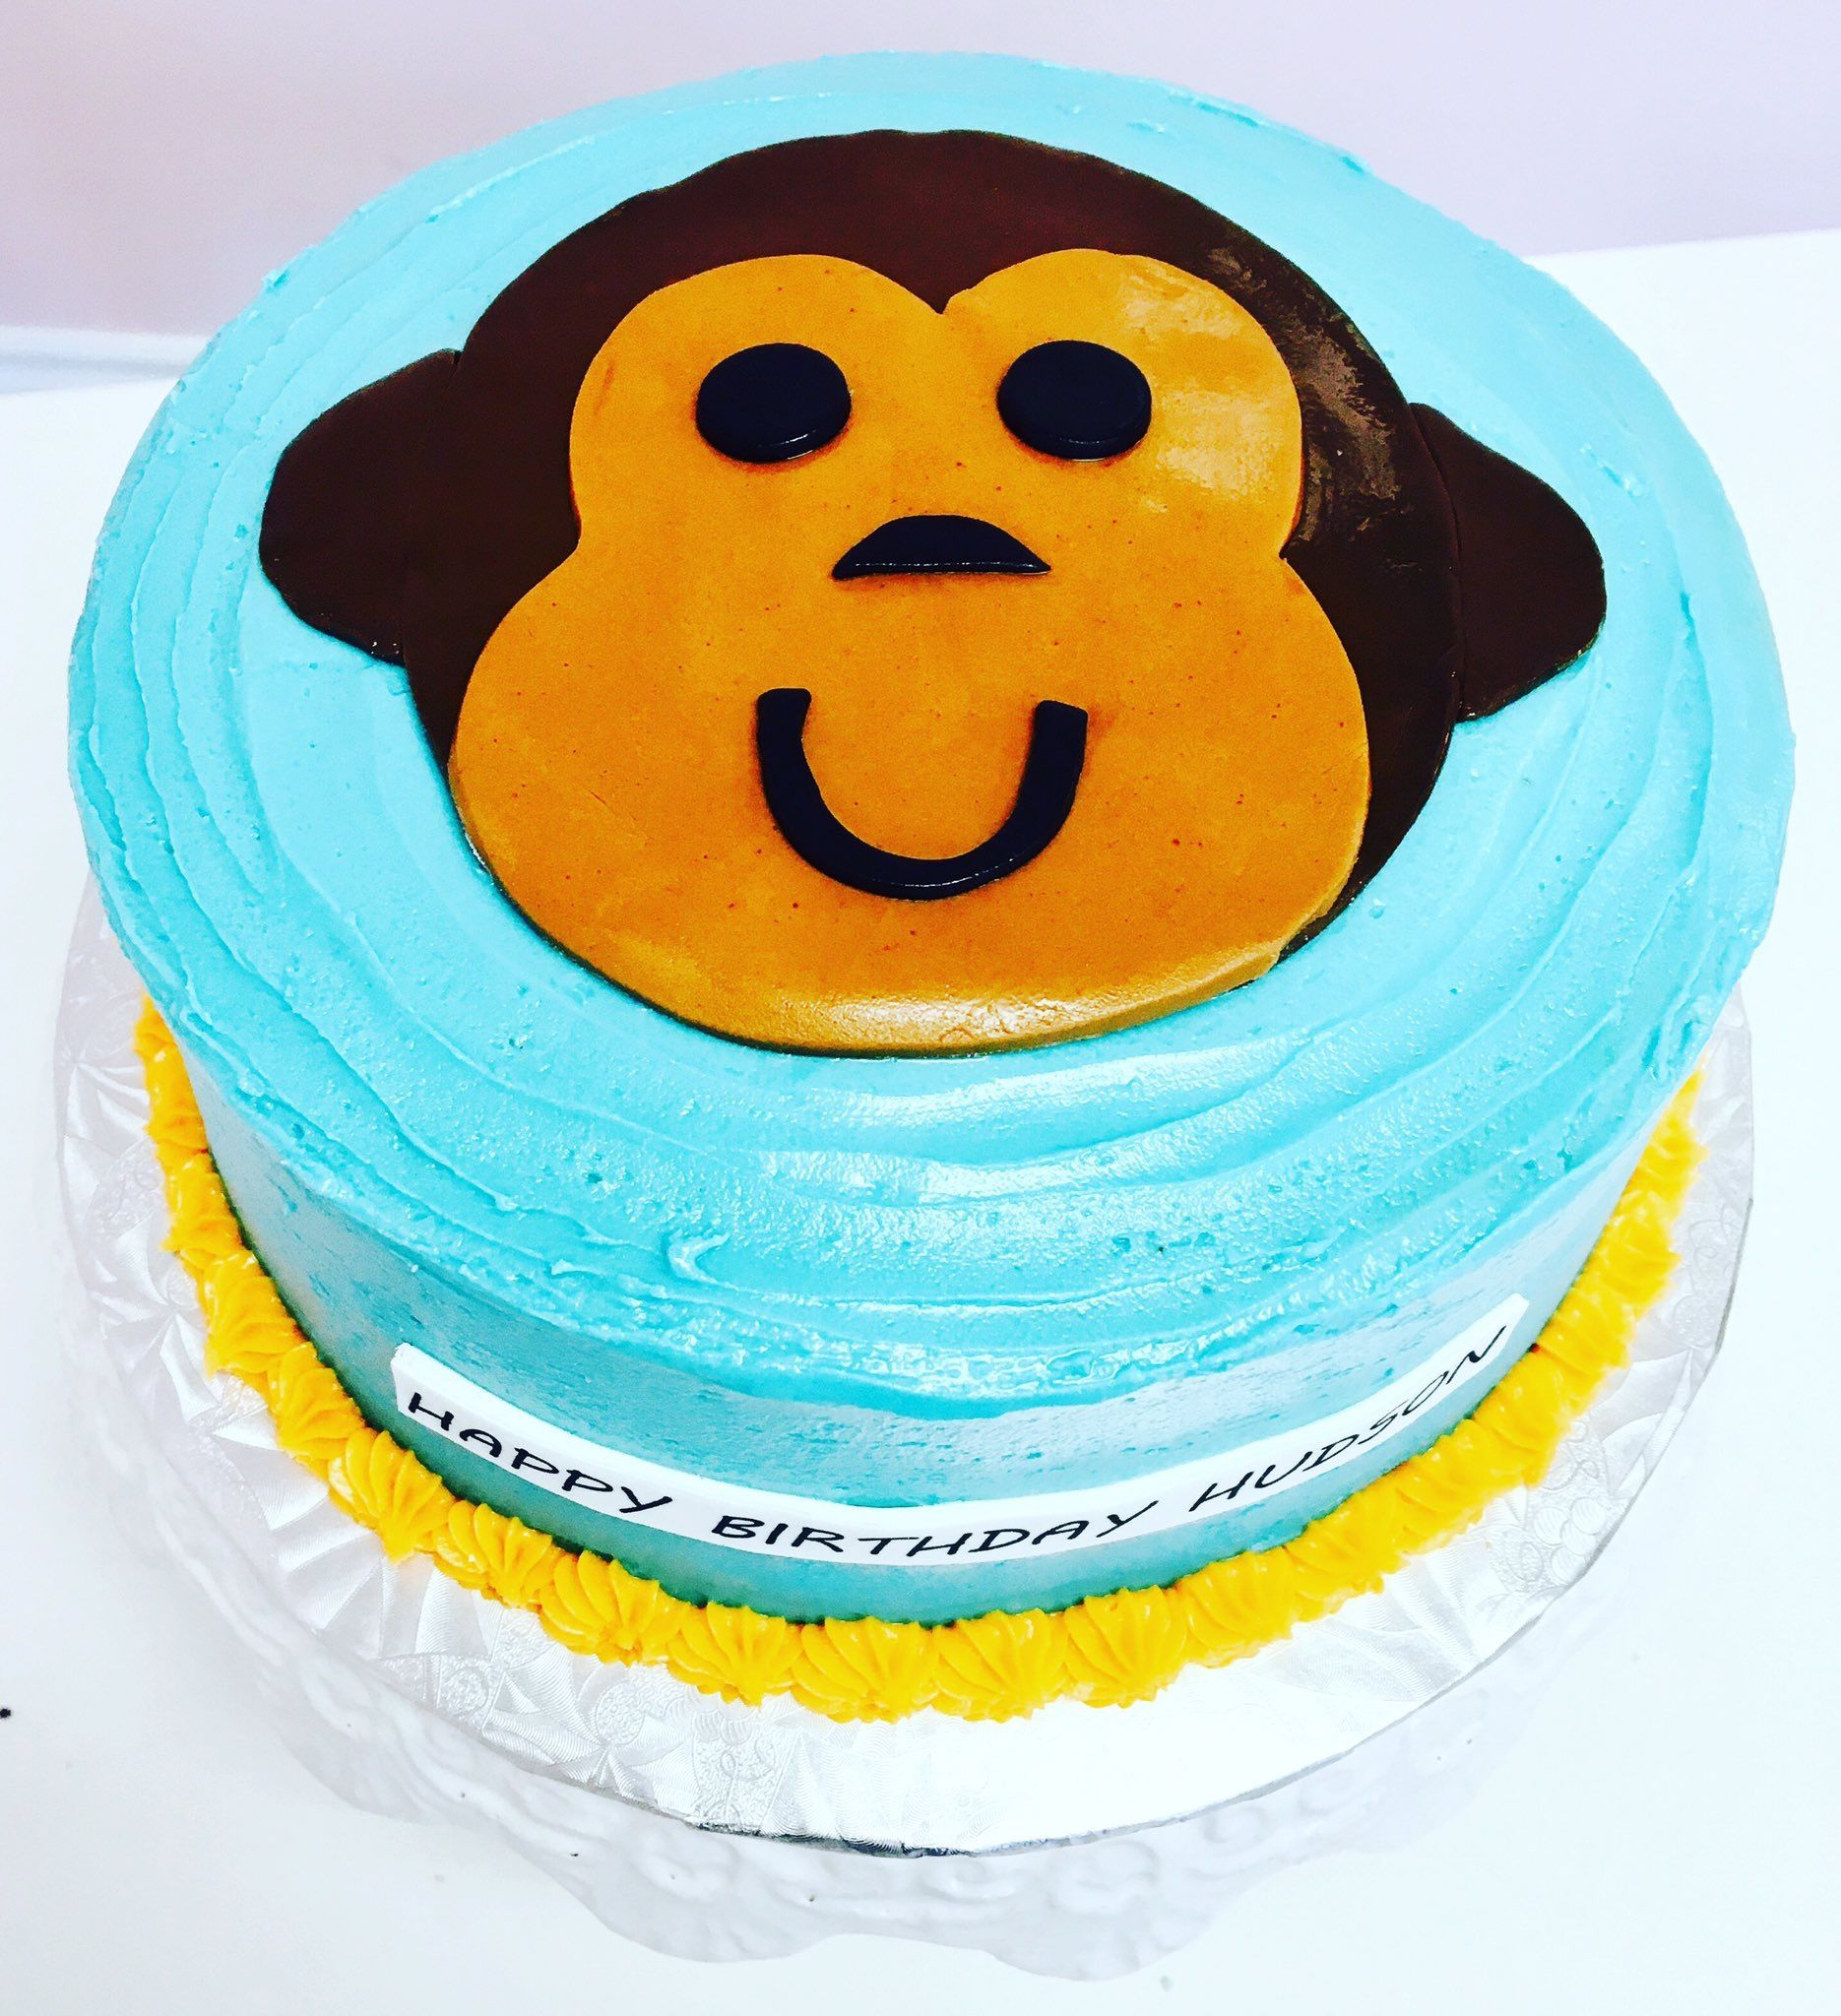 Monkey Birthday Cake #DvasCakes #Cambridge | Custom Cakes ...